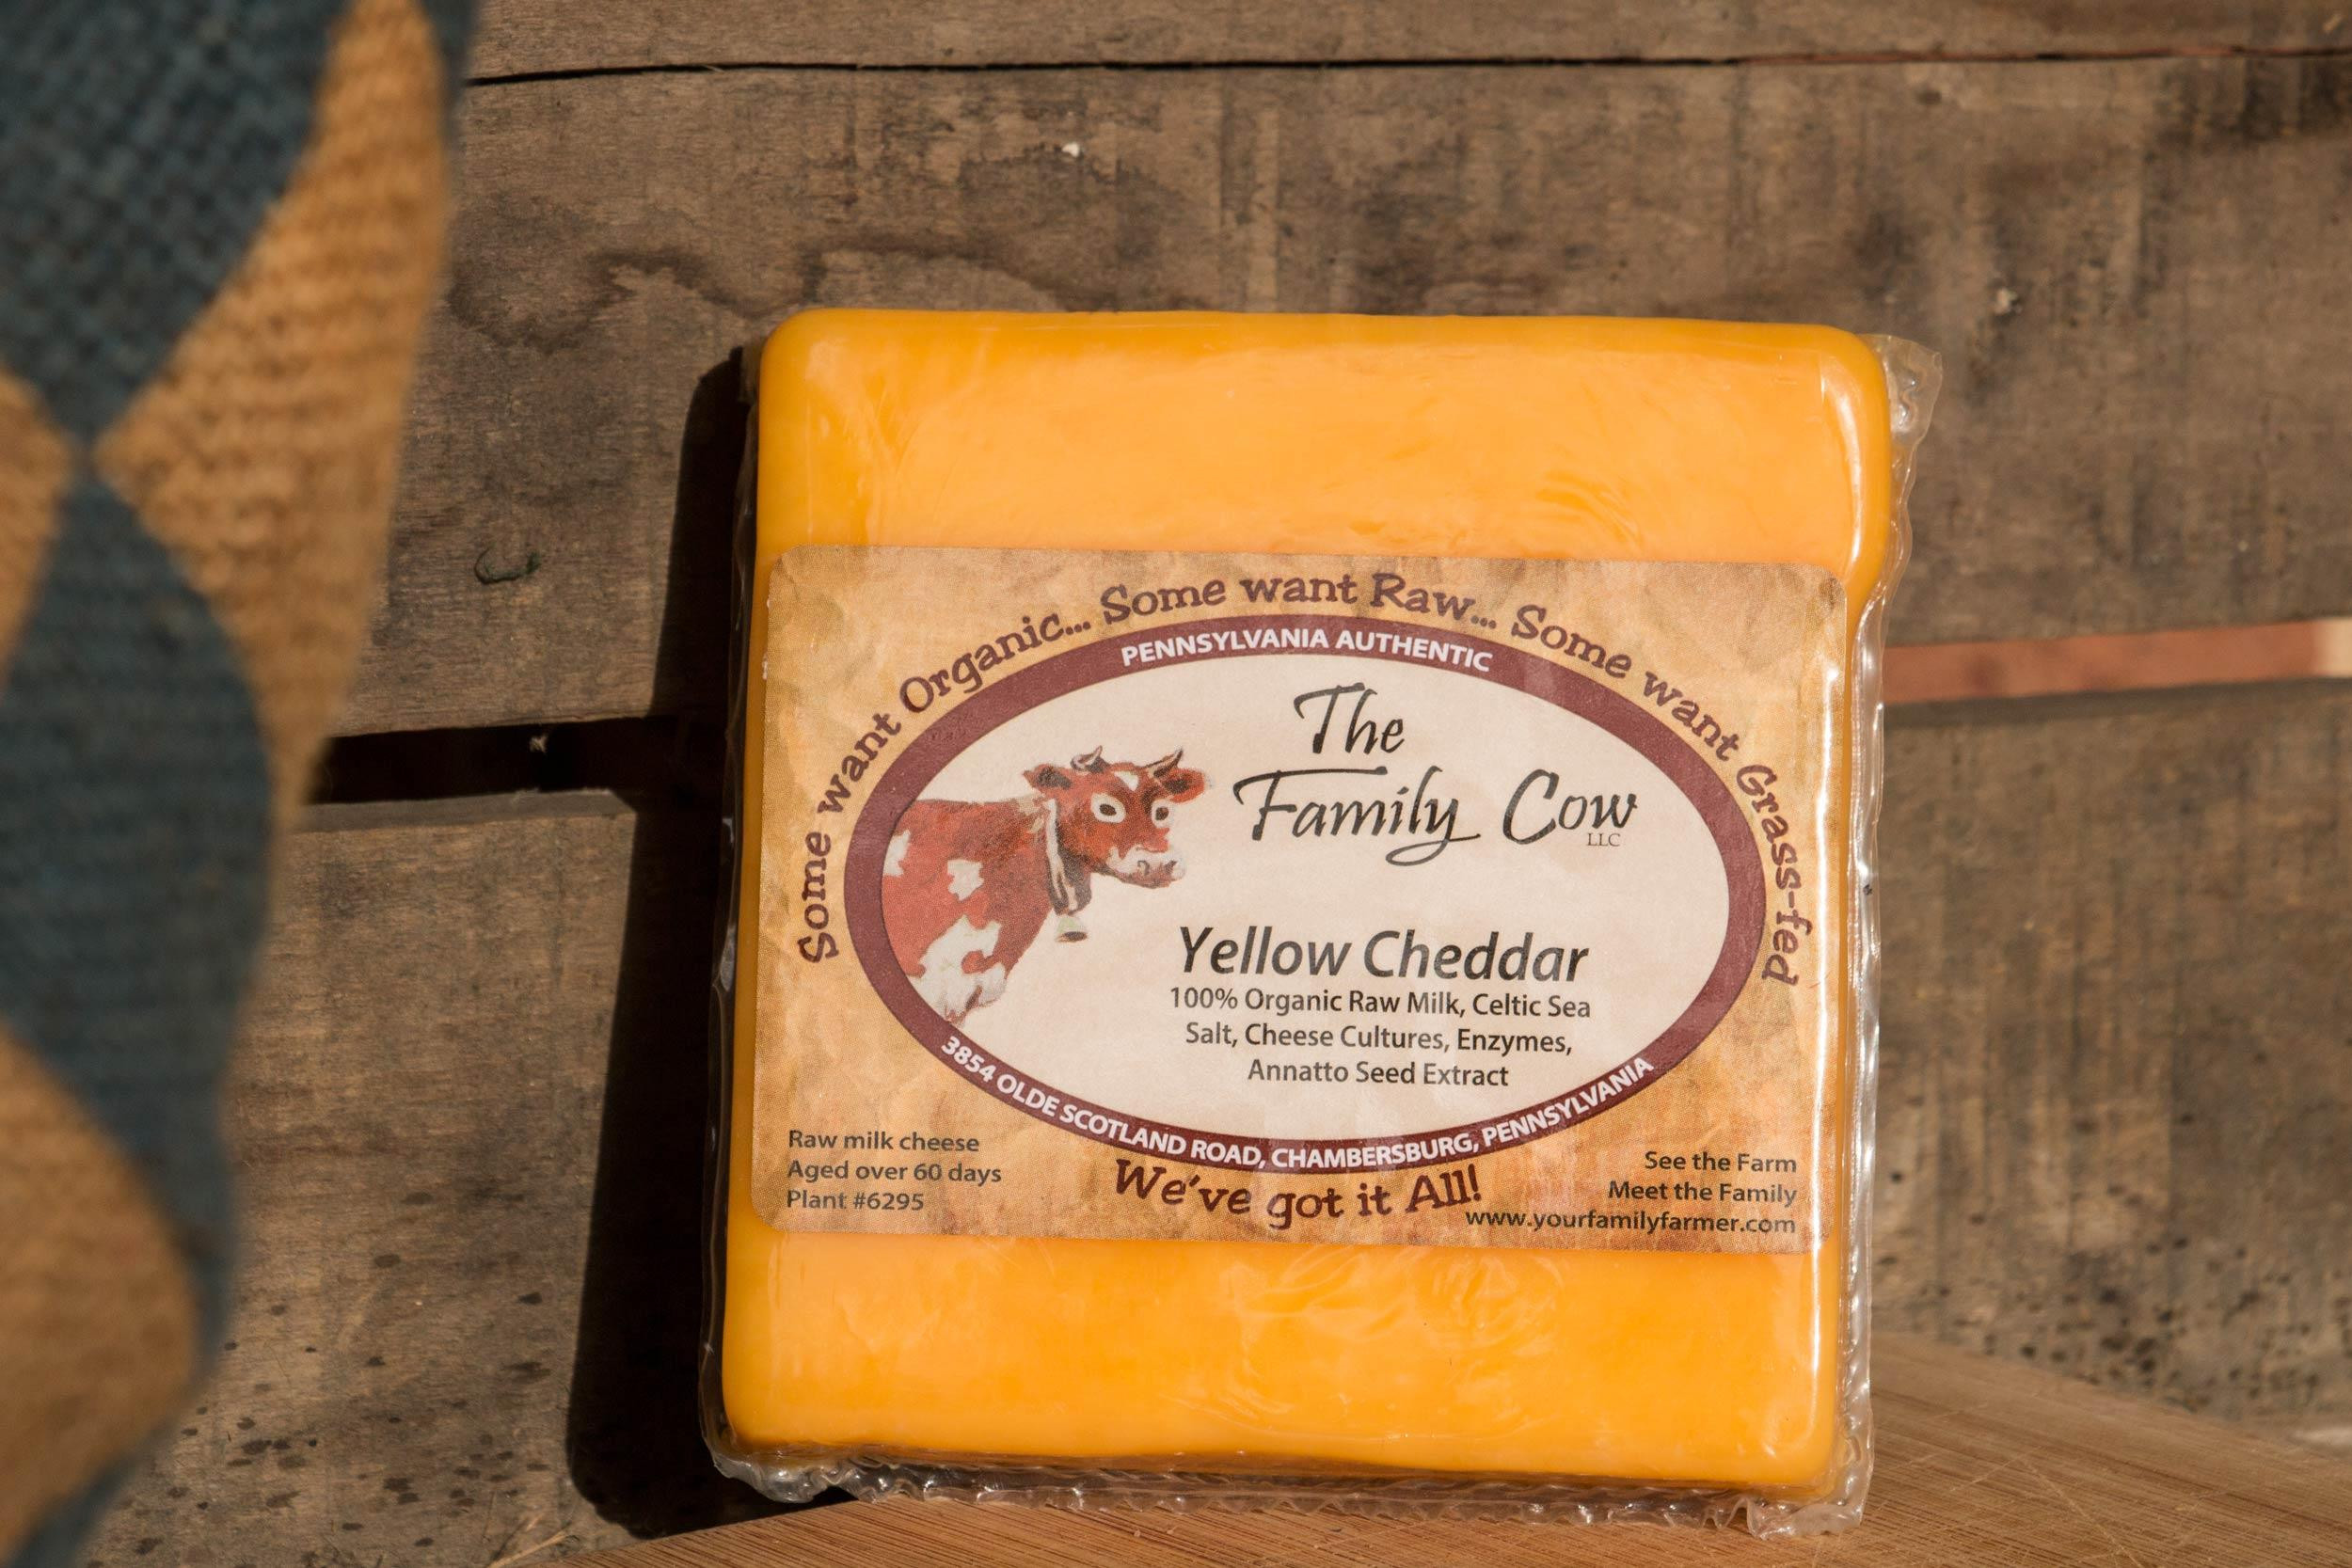 Case Yellow Cheddar -10 blocks